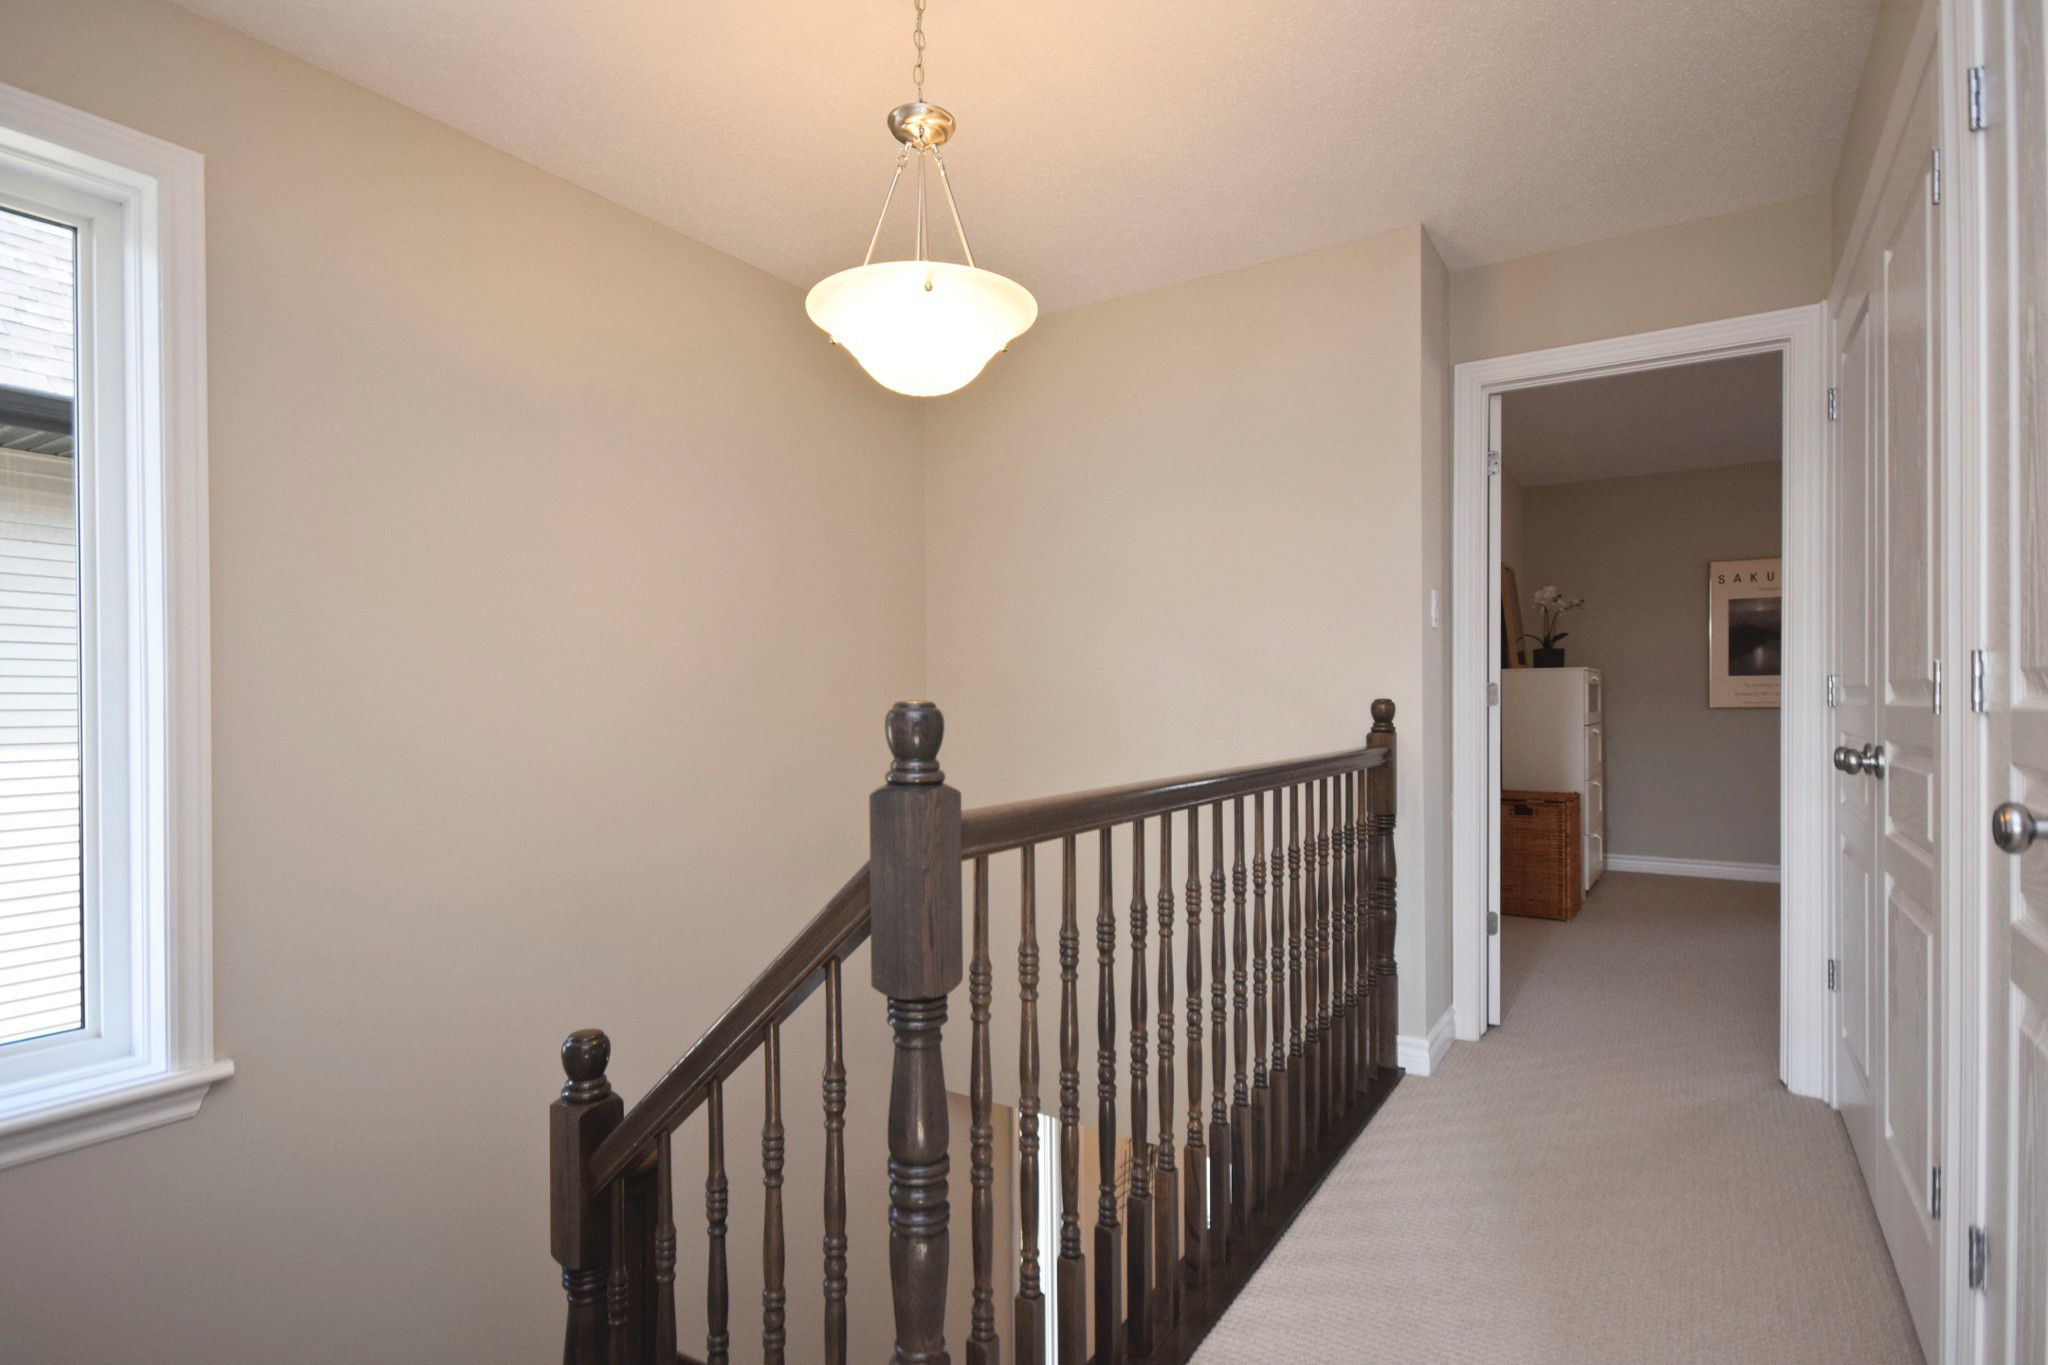 Photo 36: Photos: 131 Popplewell Crescent in Ottawa: Cedargrove / Fraserdale House for sale (Barrhaven)  : MLS®# 1130335